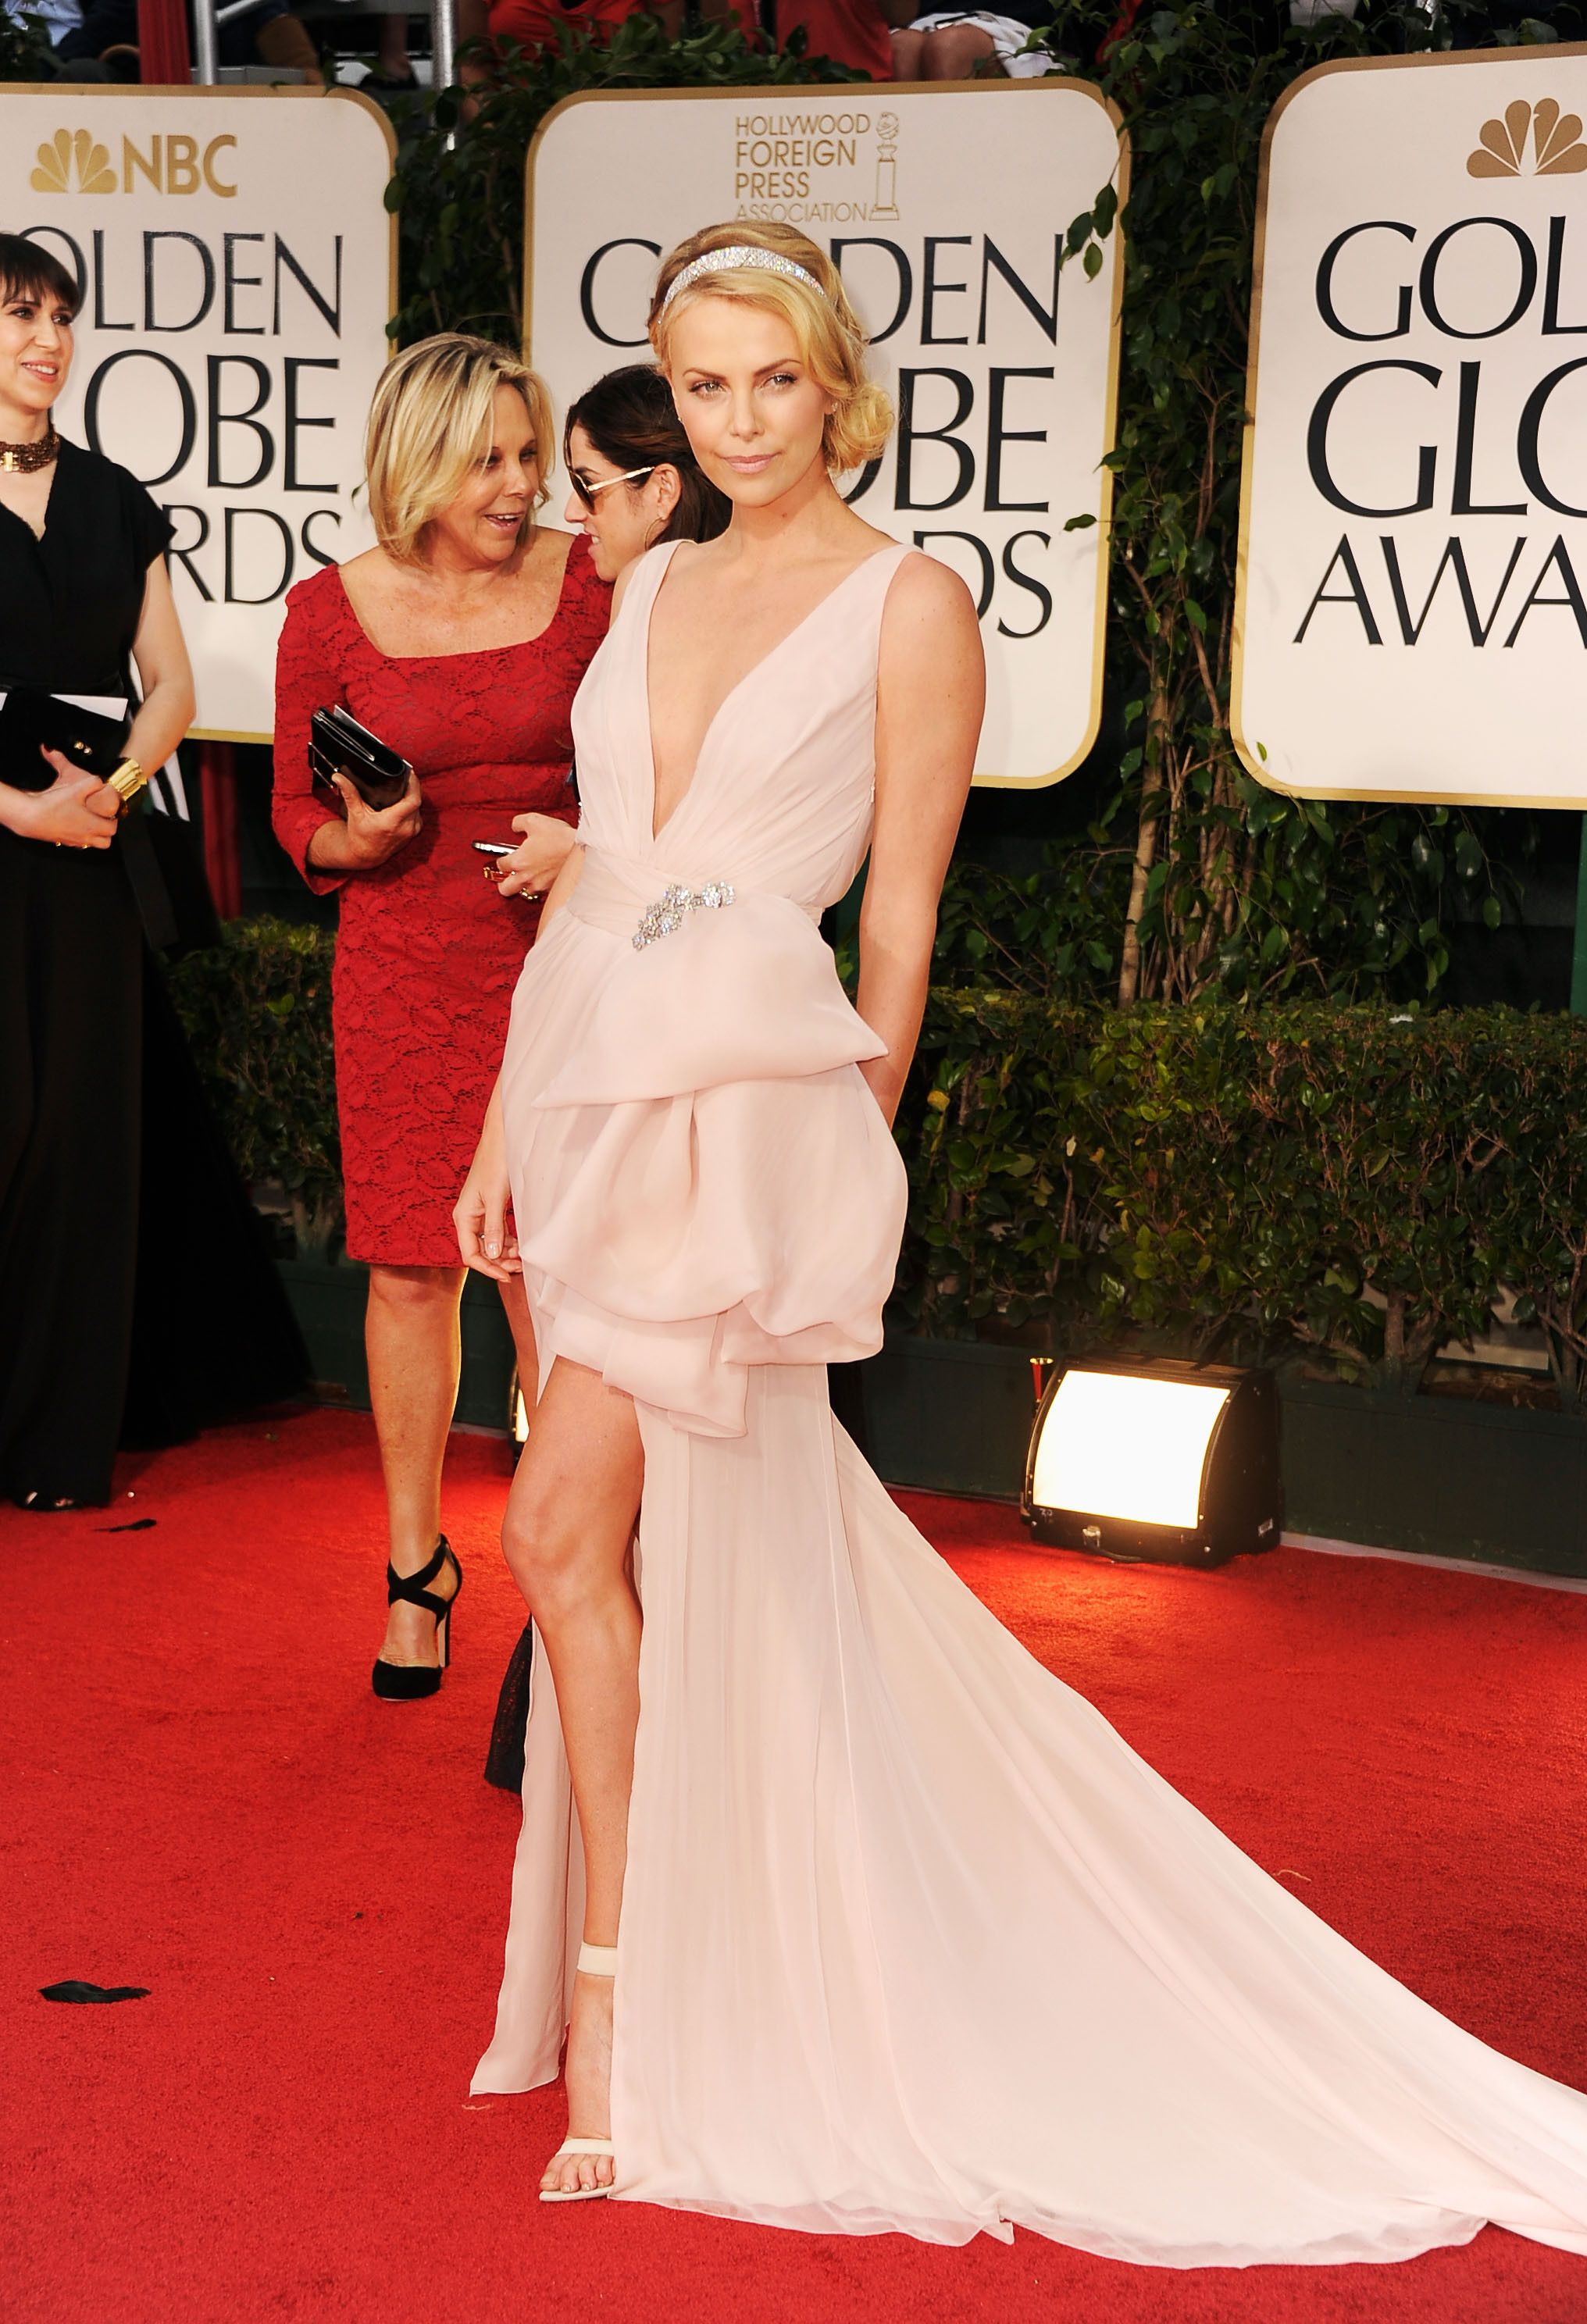 8f2a21a5d133f Charlize Theron arrives at the 69th Annual Golden Globe Awards held at the  Beverly Hilton Hotel on January 15, 2012 in Beverly Hills, California.